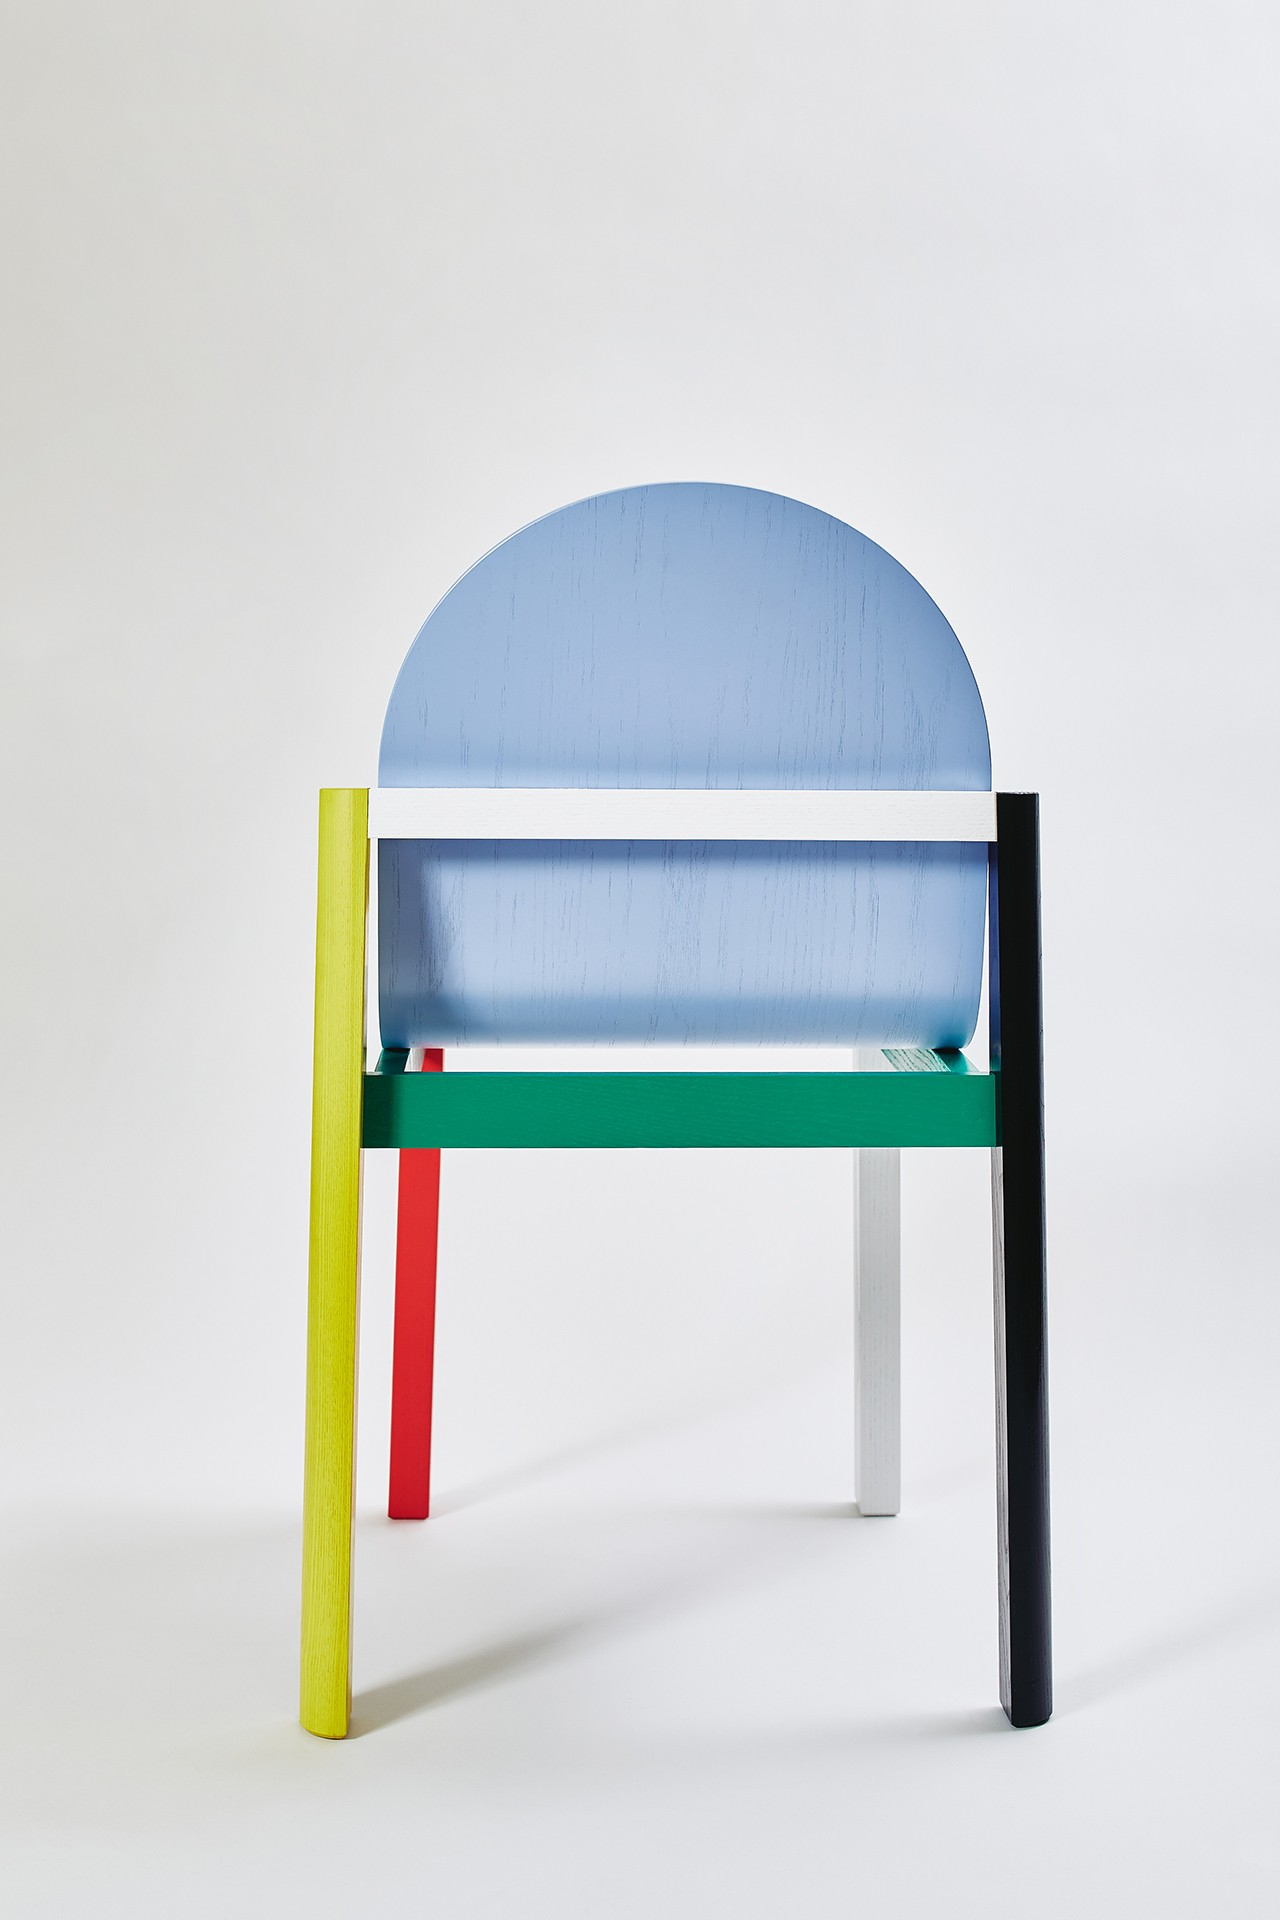 Dims. Dusen Dusen Cleo Chair Stine Aas Designer Furniture Brand Home Interior Decor Colorful Ellen Van